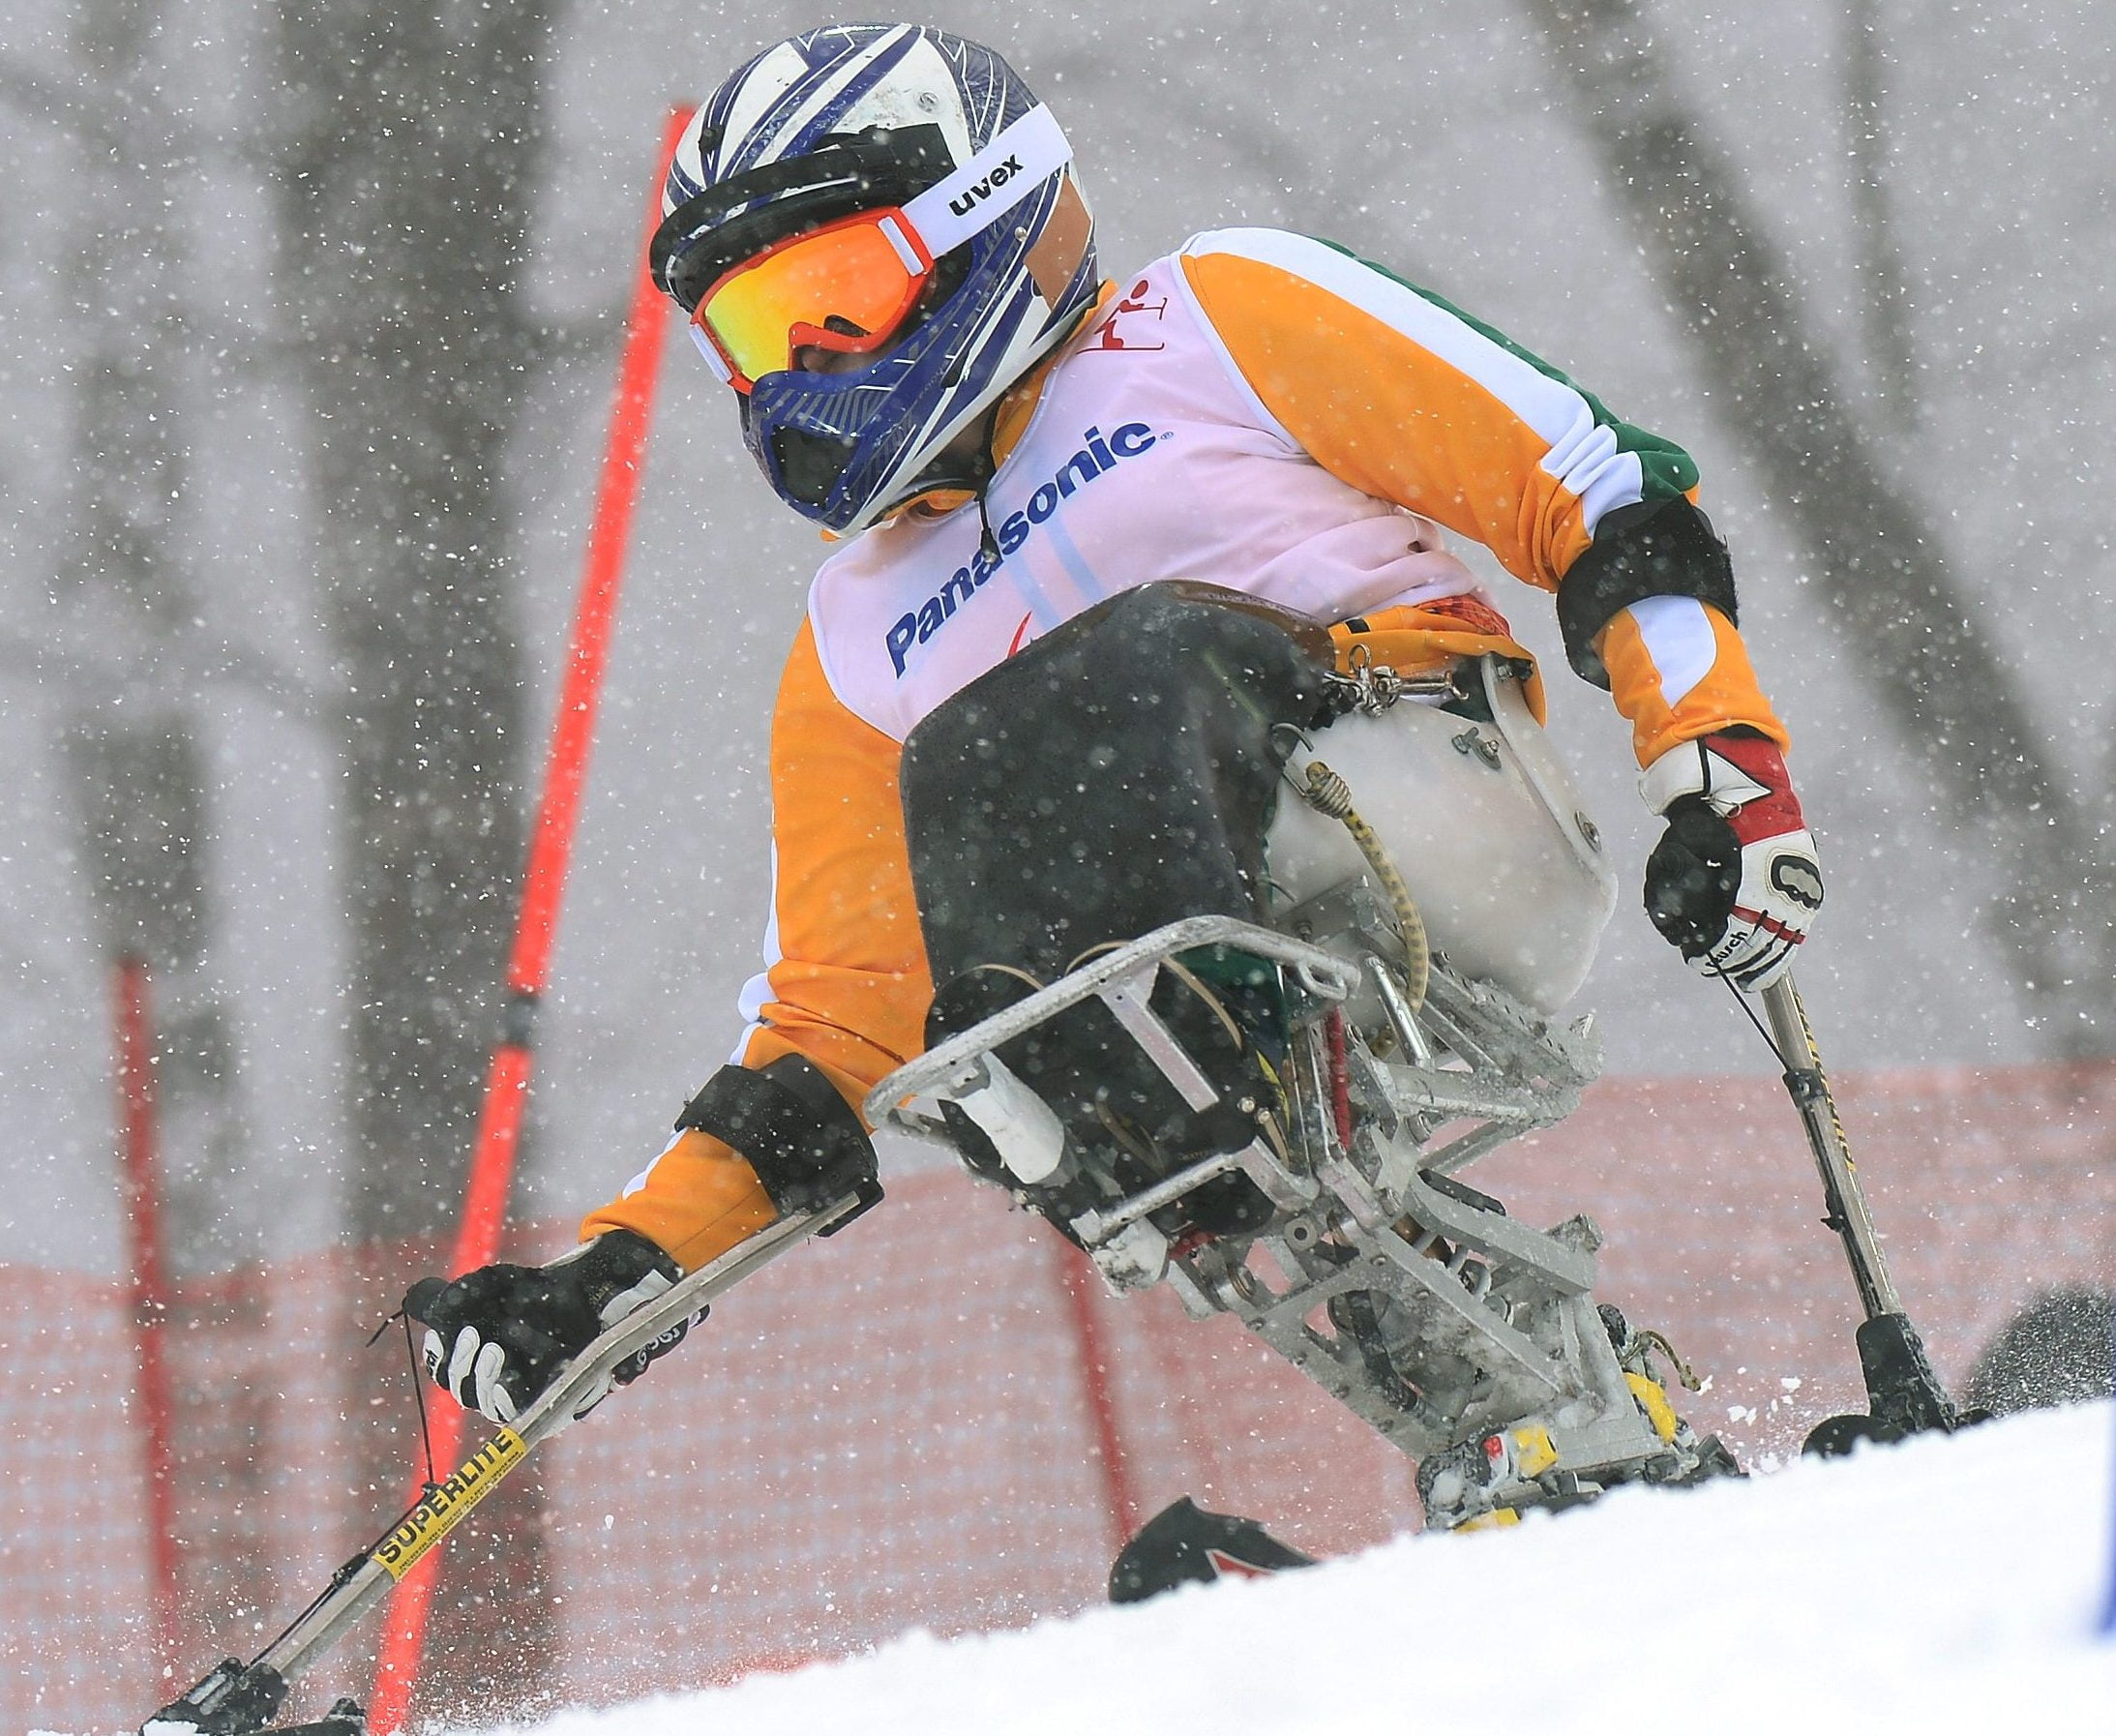 Nations officially invited to PyeongChang 2018 Paralympic Winter Games